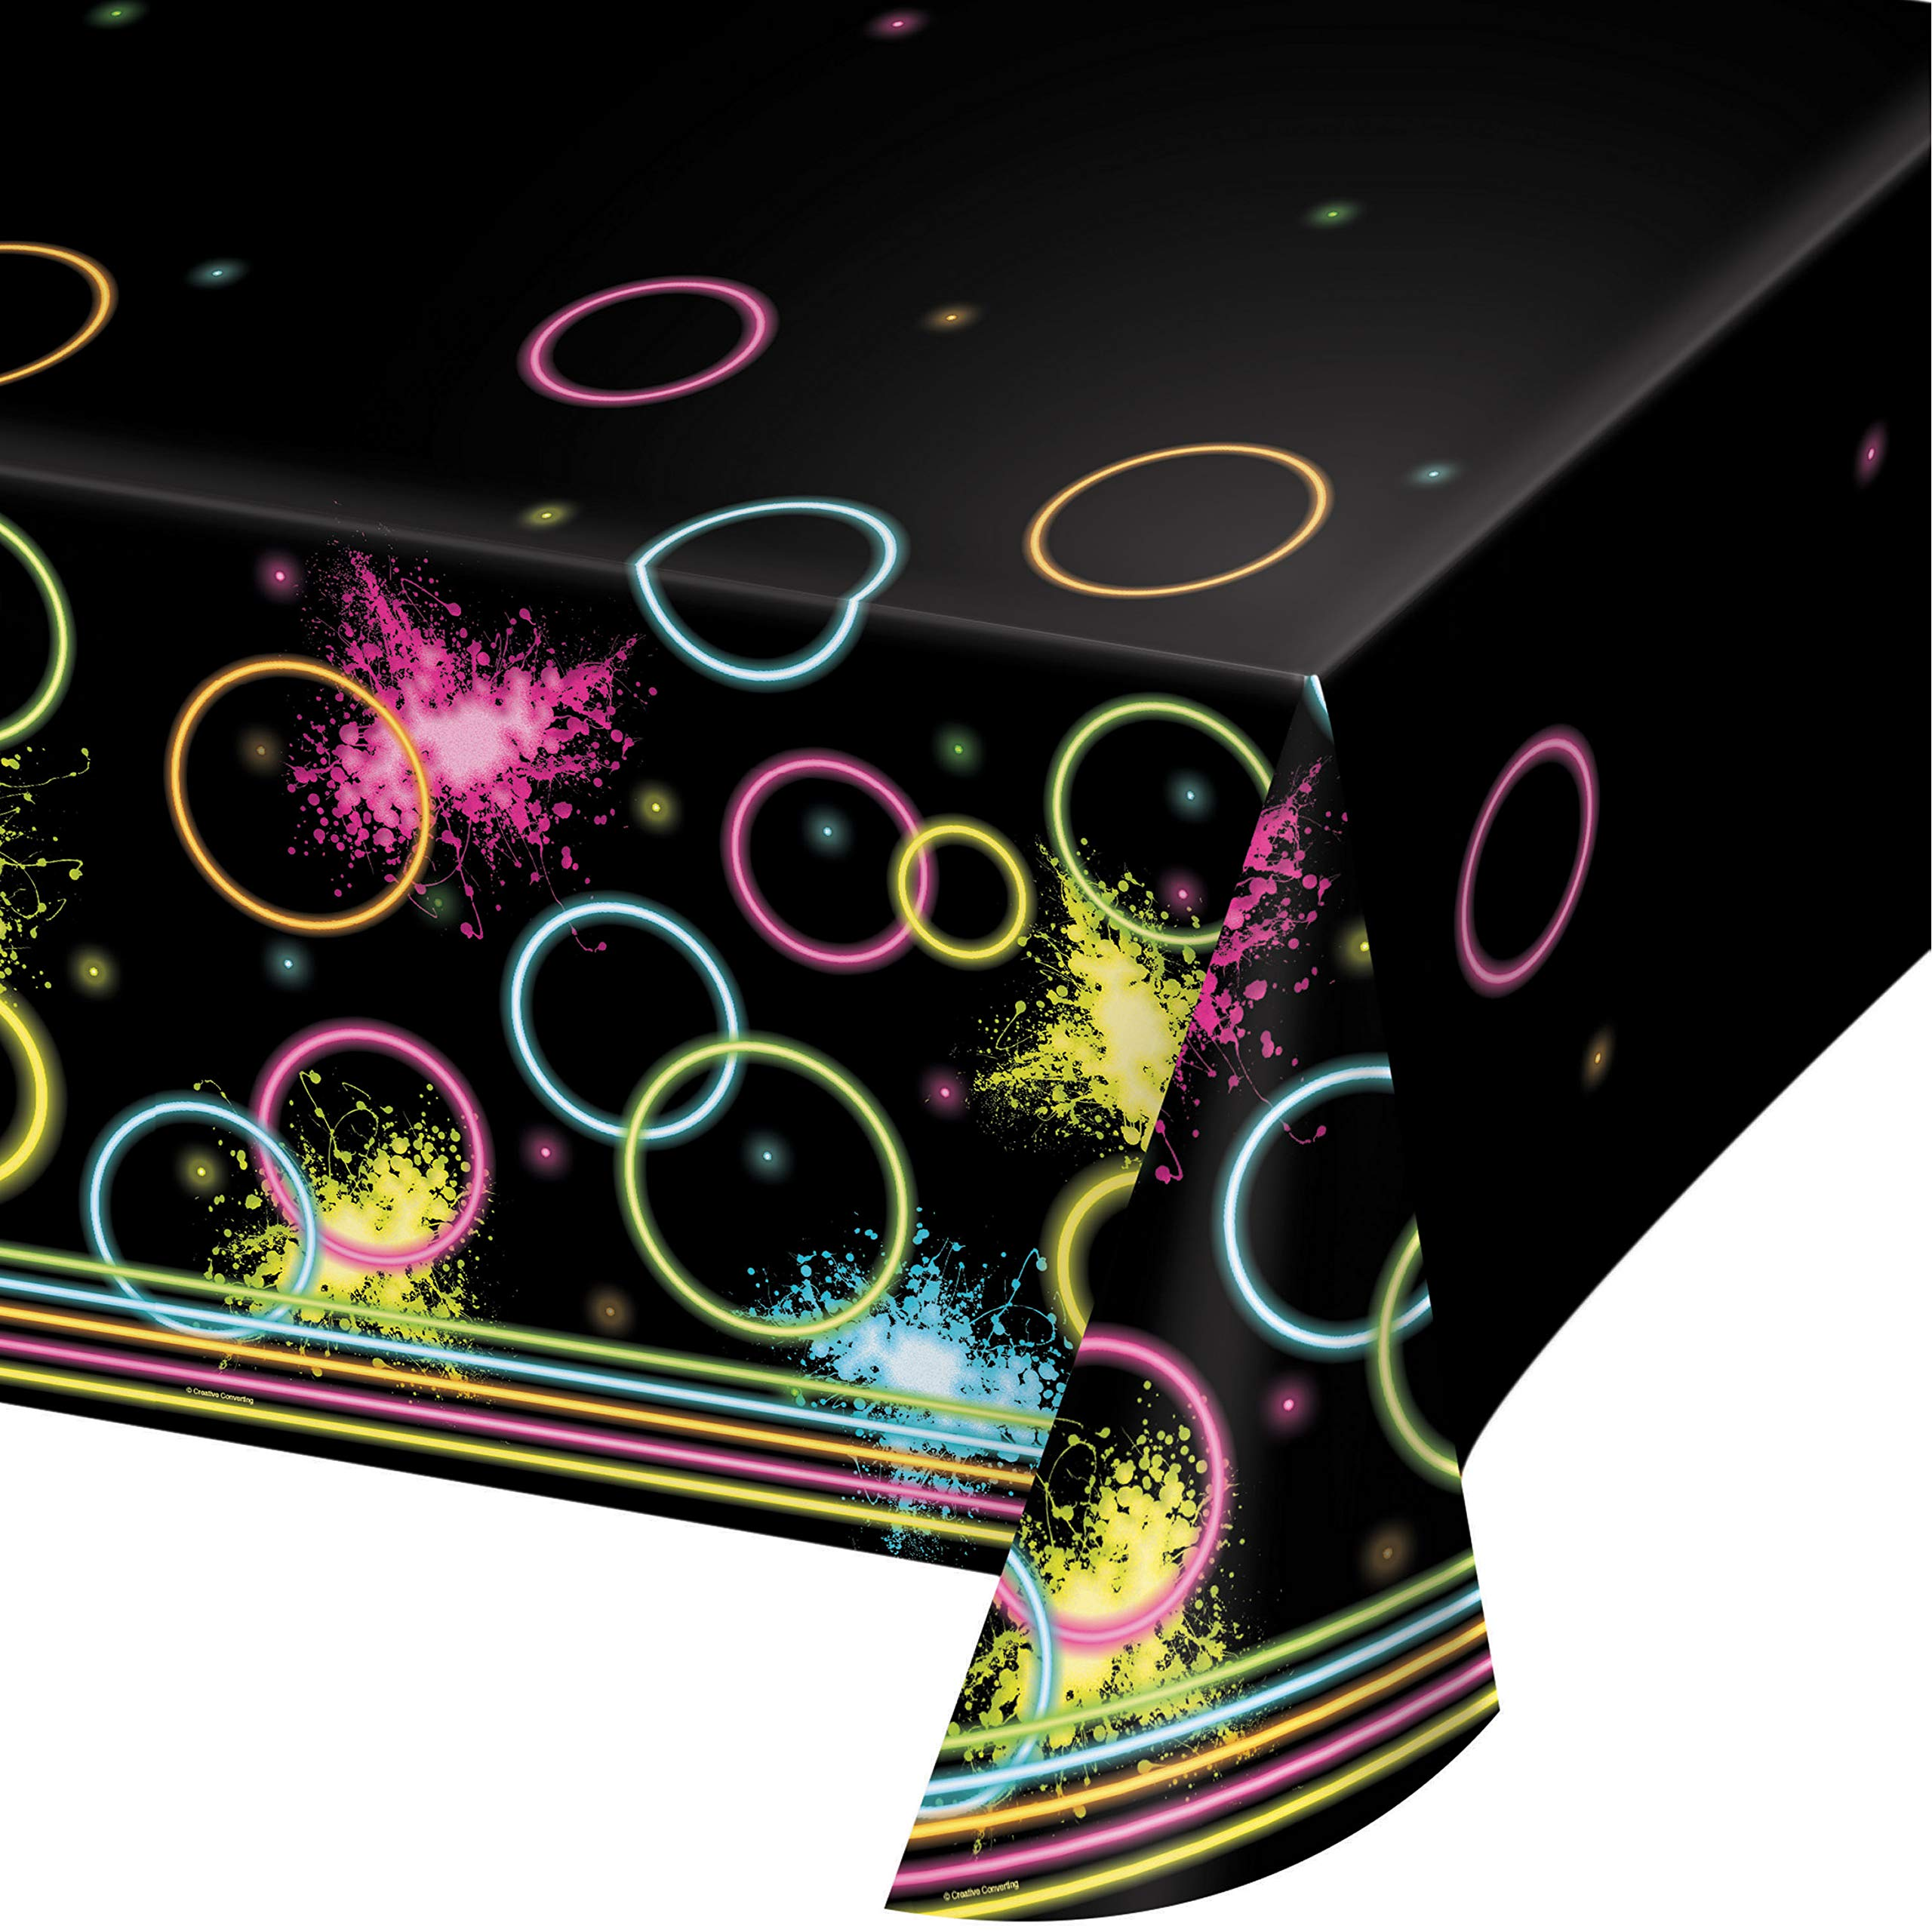 Glow Party Plastic Tablecloths, 3 ct by Creative Converting